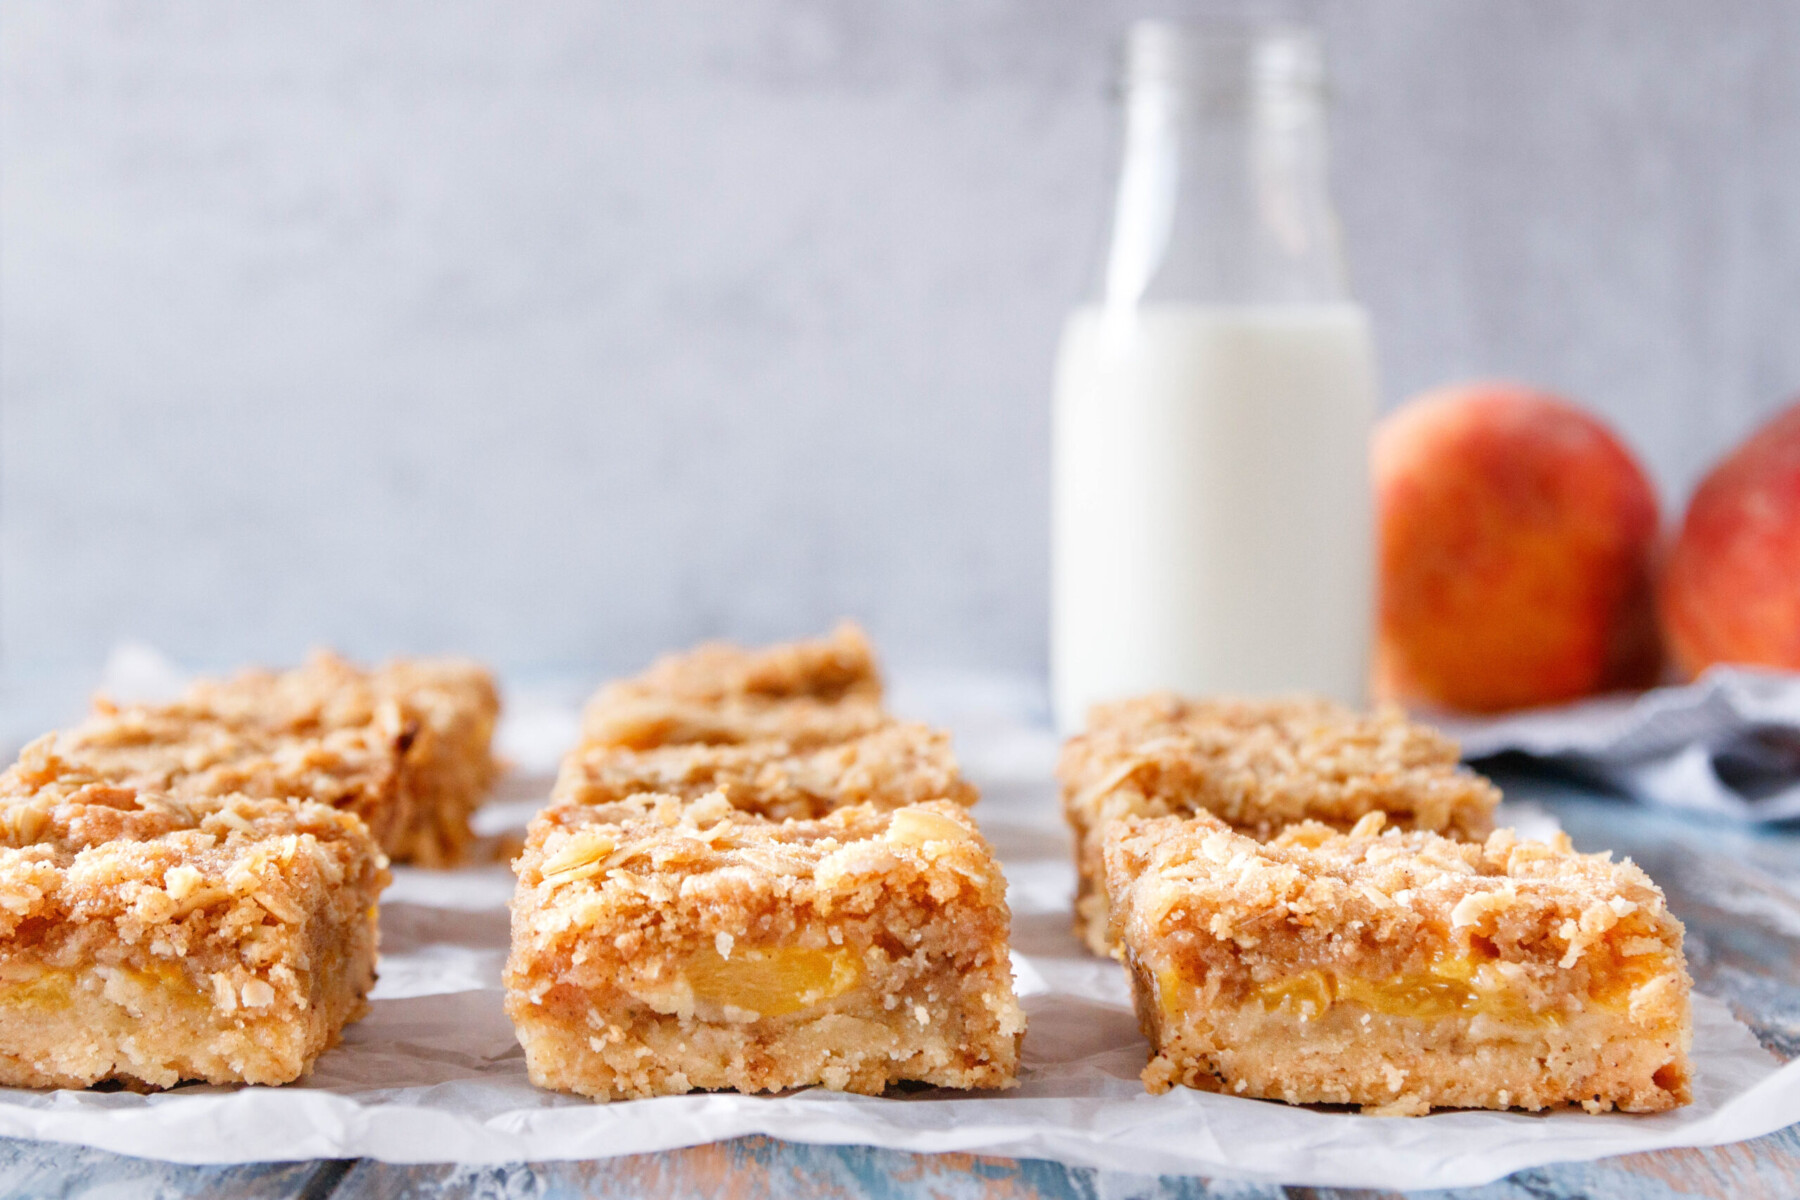 close up of the bars arranged in a single layer and sliced so you can see the base, peach, and crumb layers